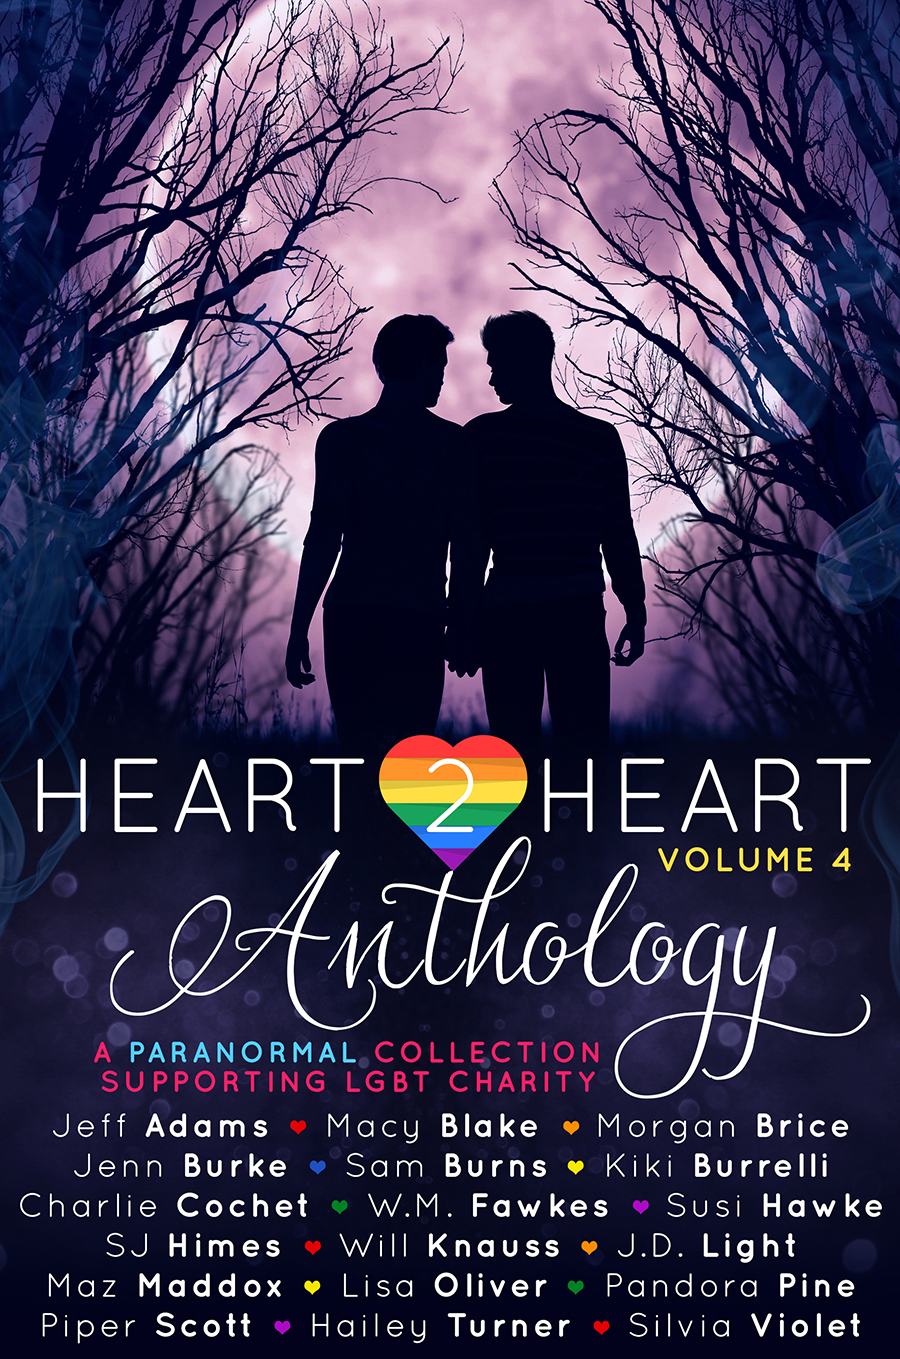 Copy of Heart2Heart-Anthology-4-Medum